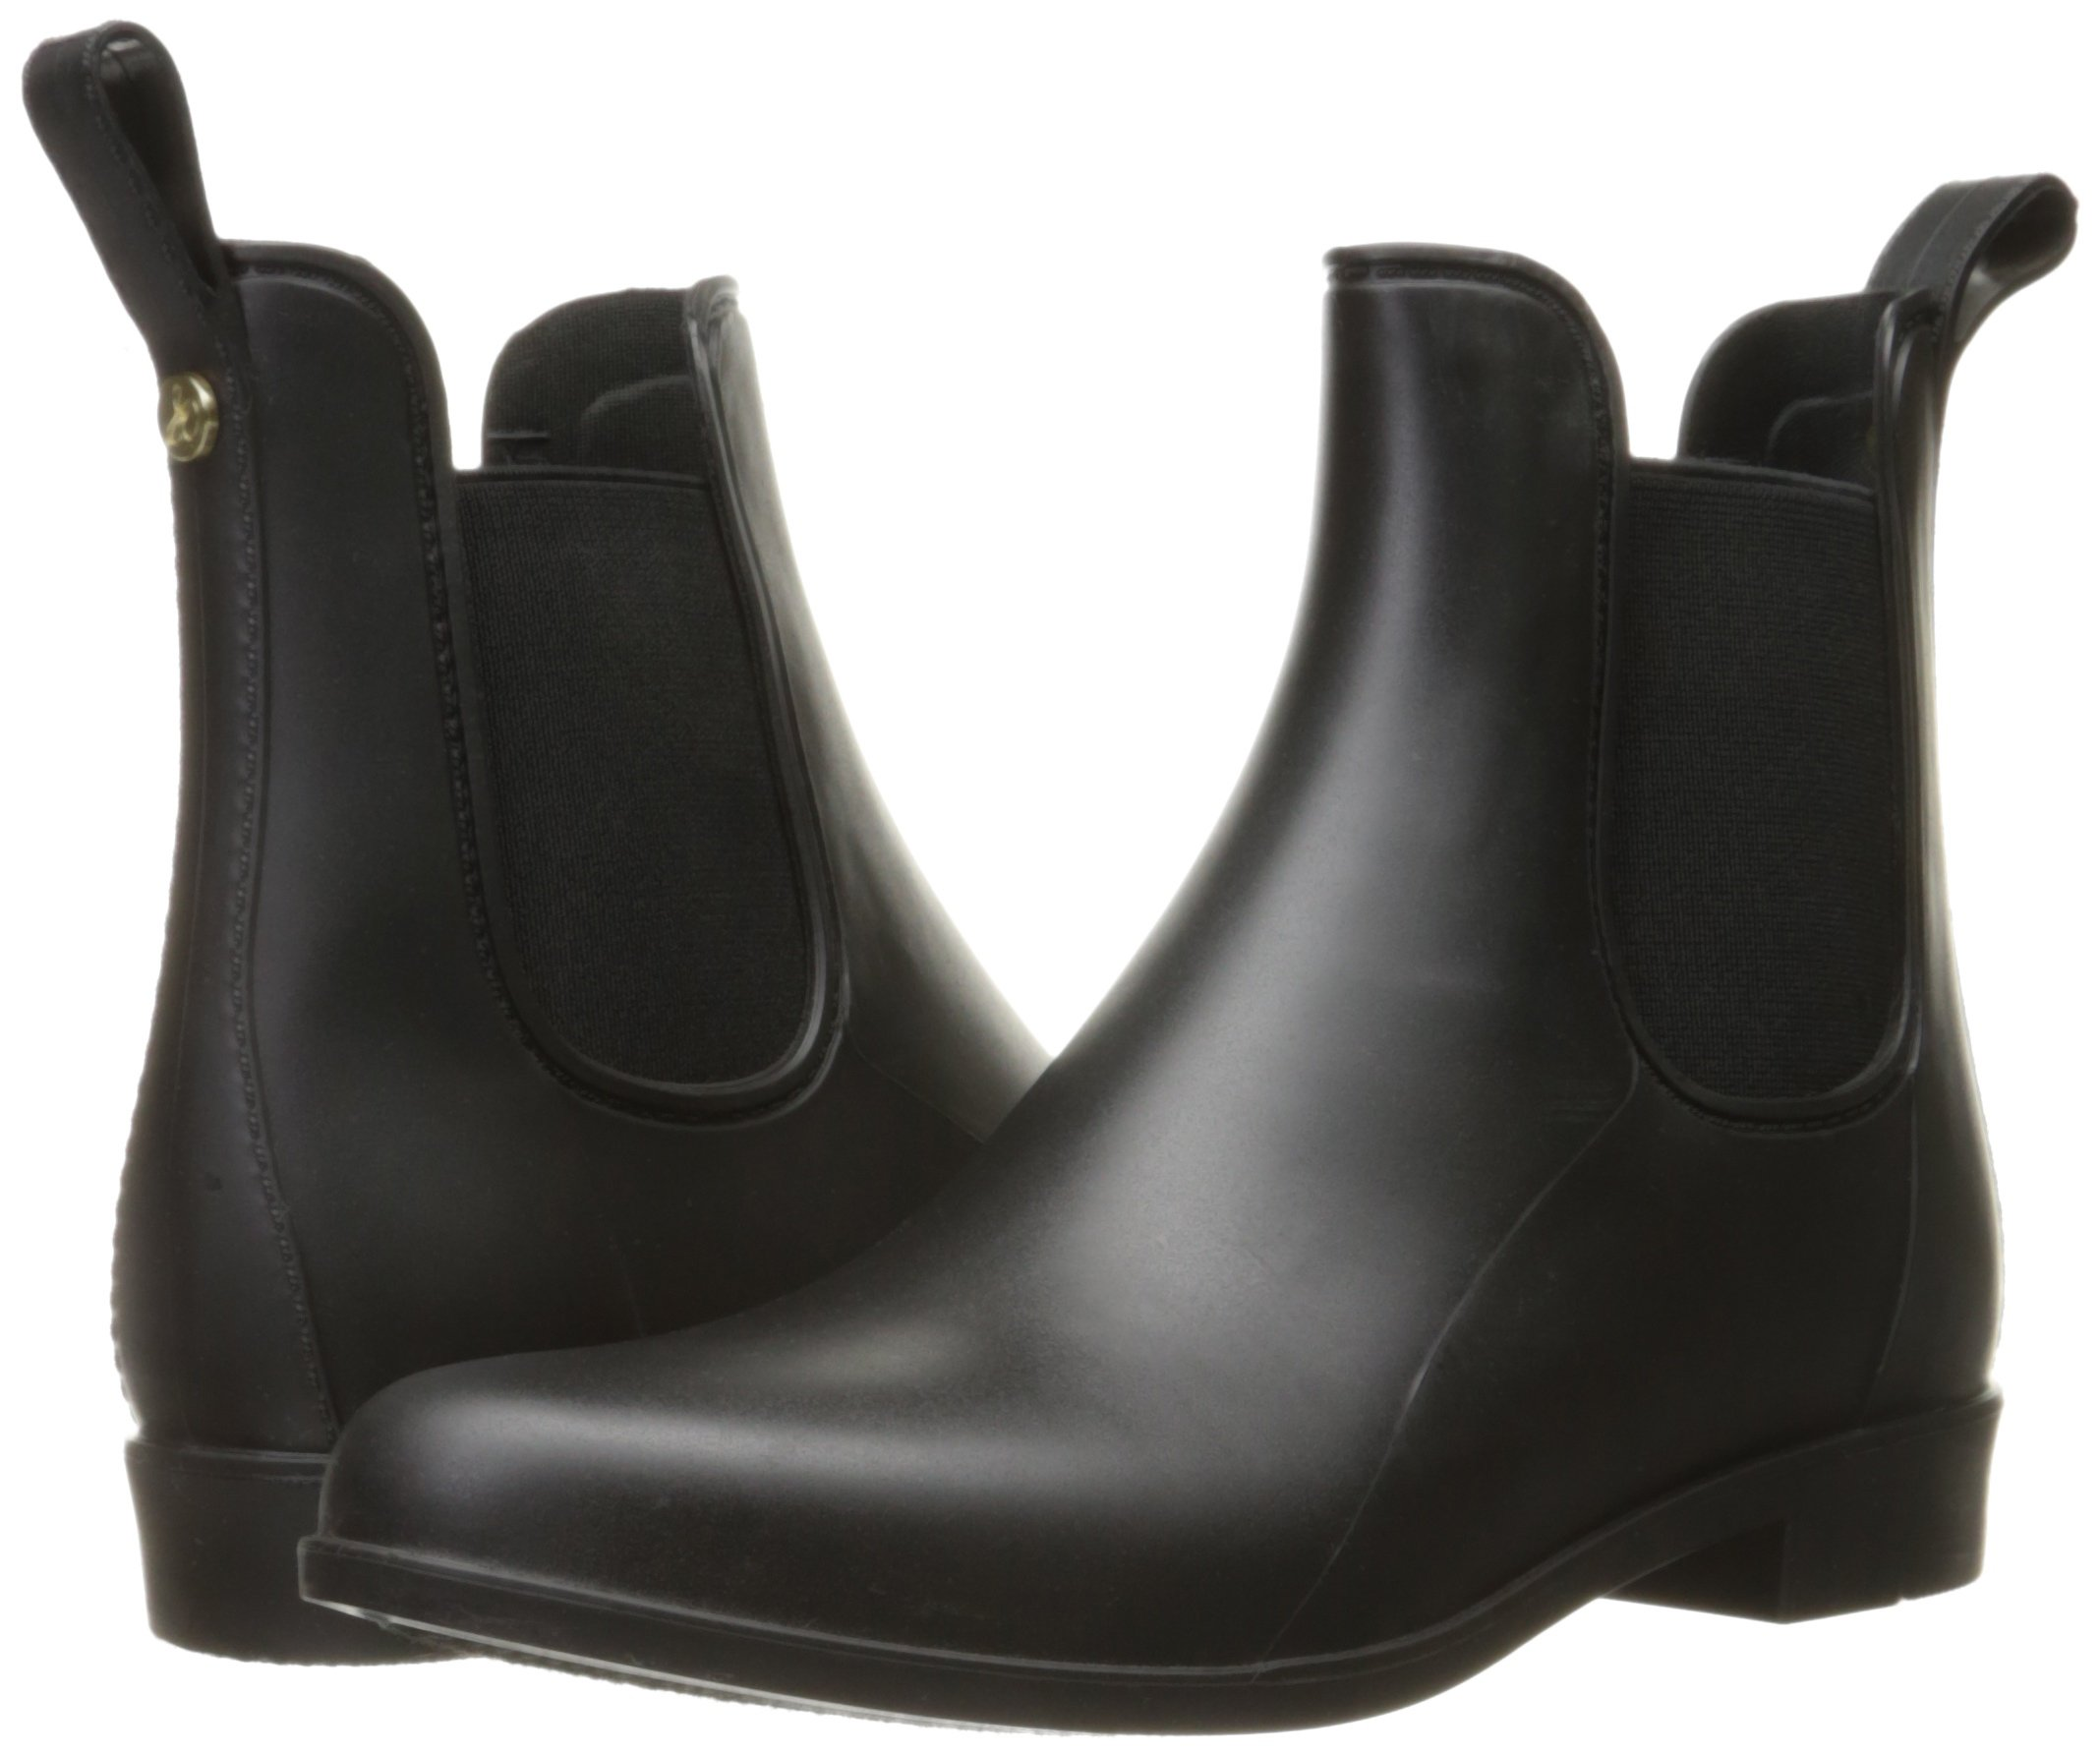 Sam Edelman Women's Tinsley Rain Boot, Black Matte, 9 M US by Sam Edelman (Image #6)